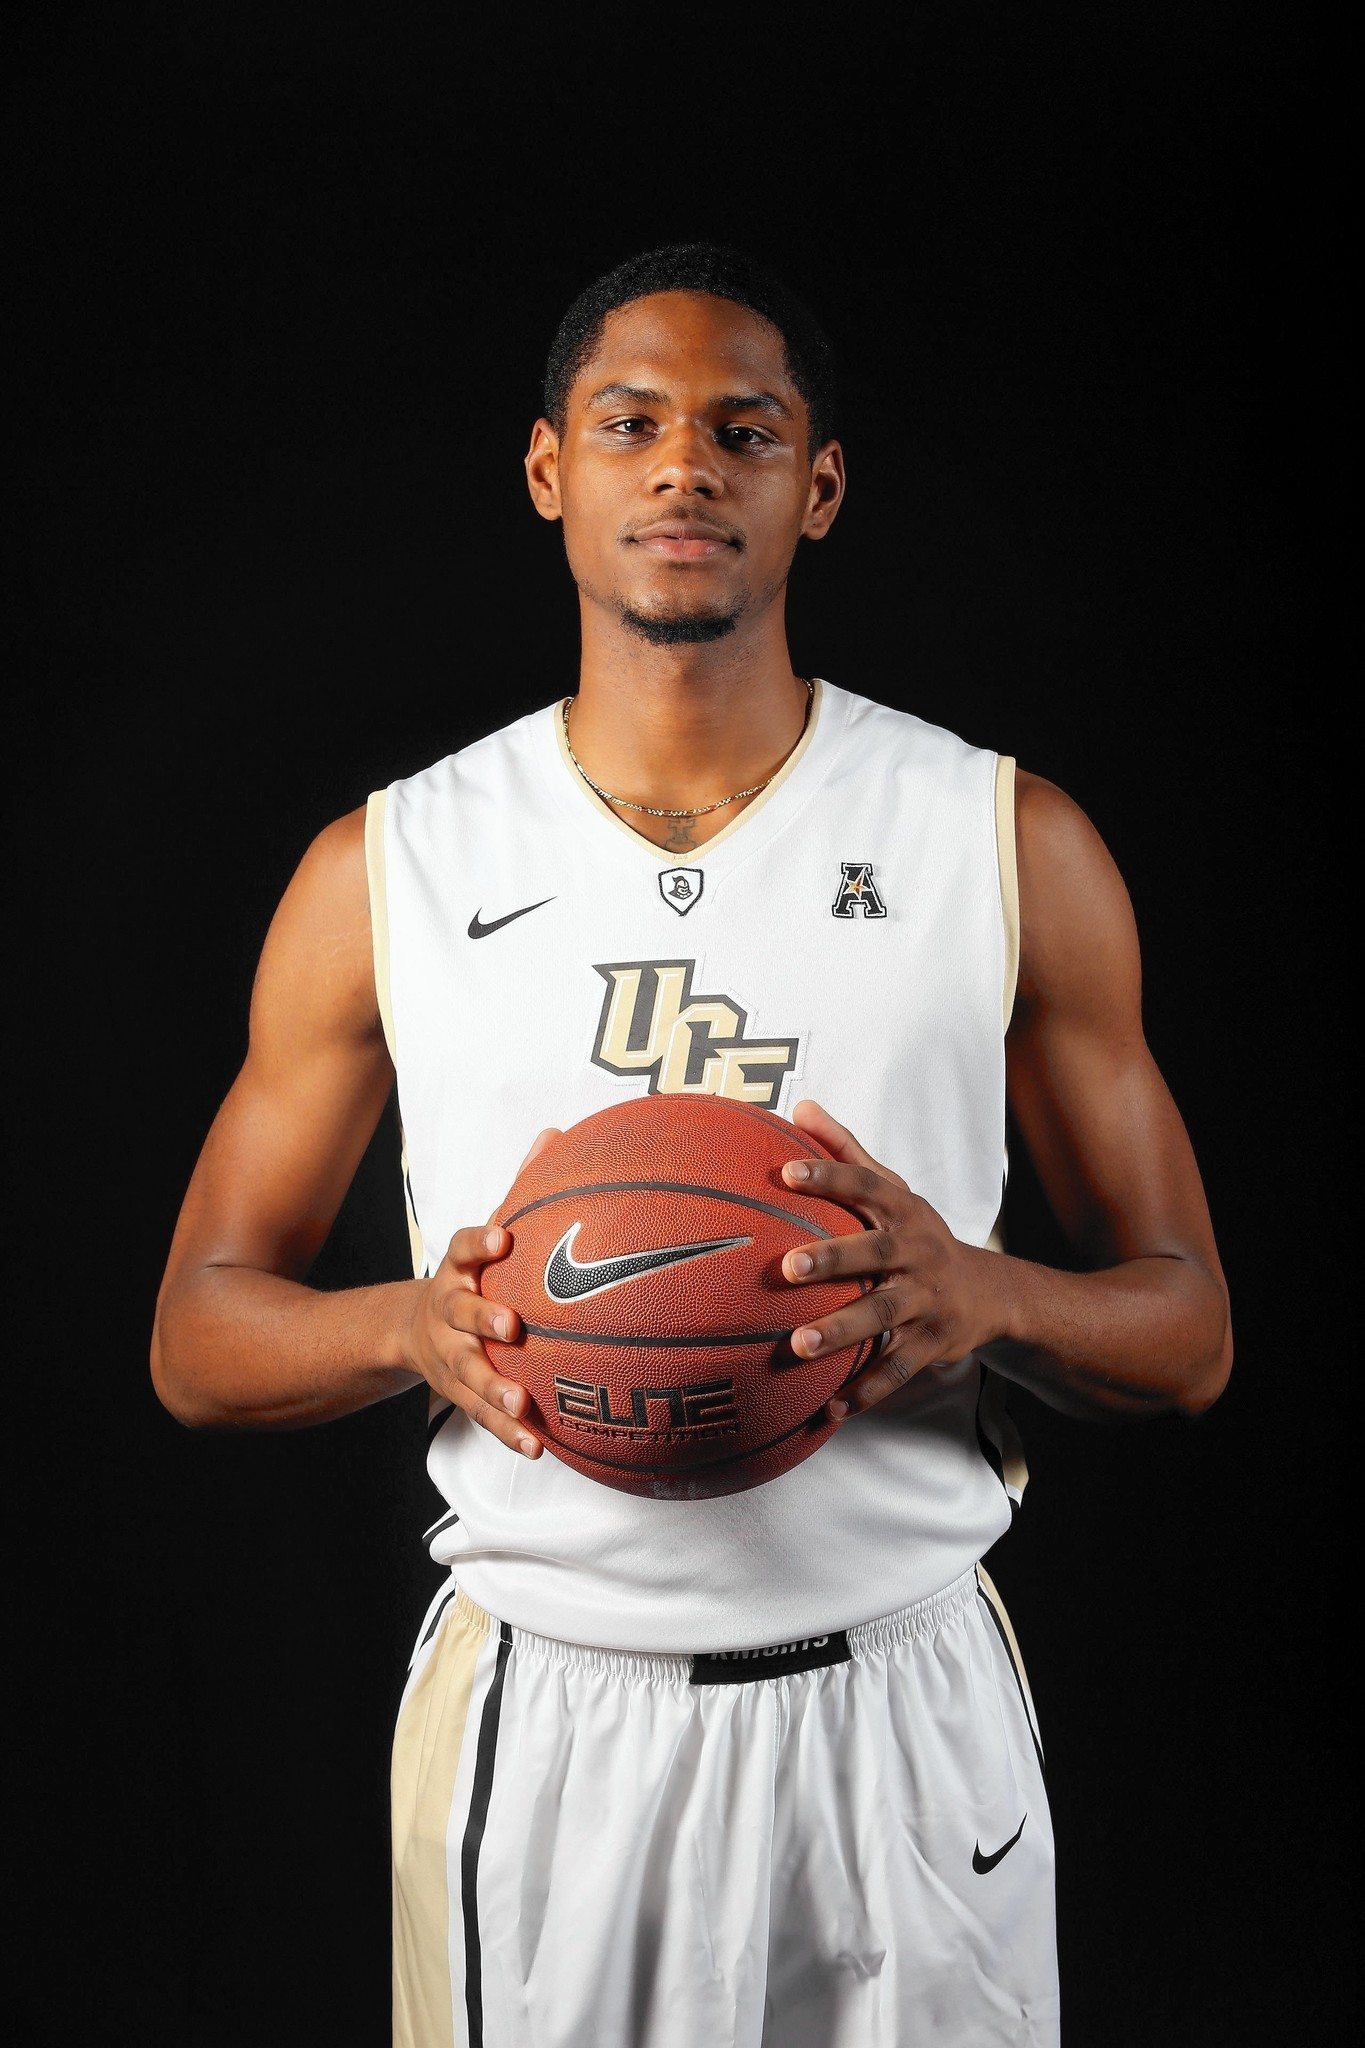 Tennessee hoops transfer A J Davis is eager to help Knights win